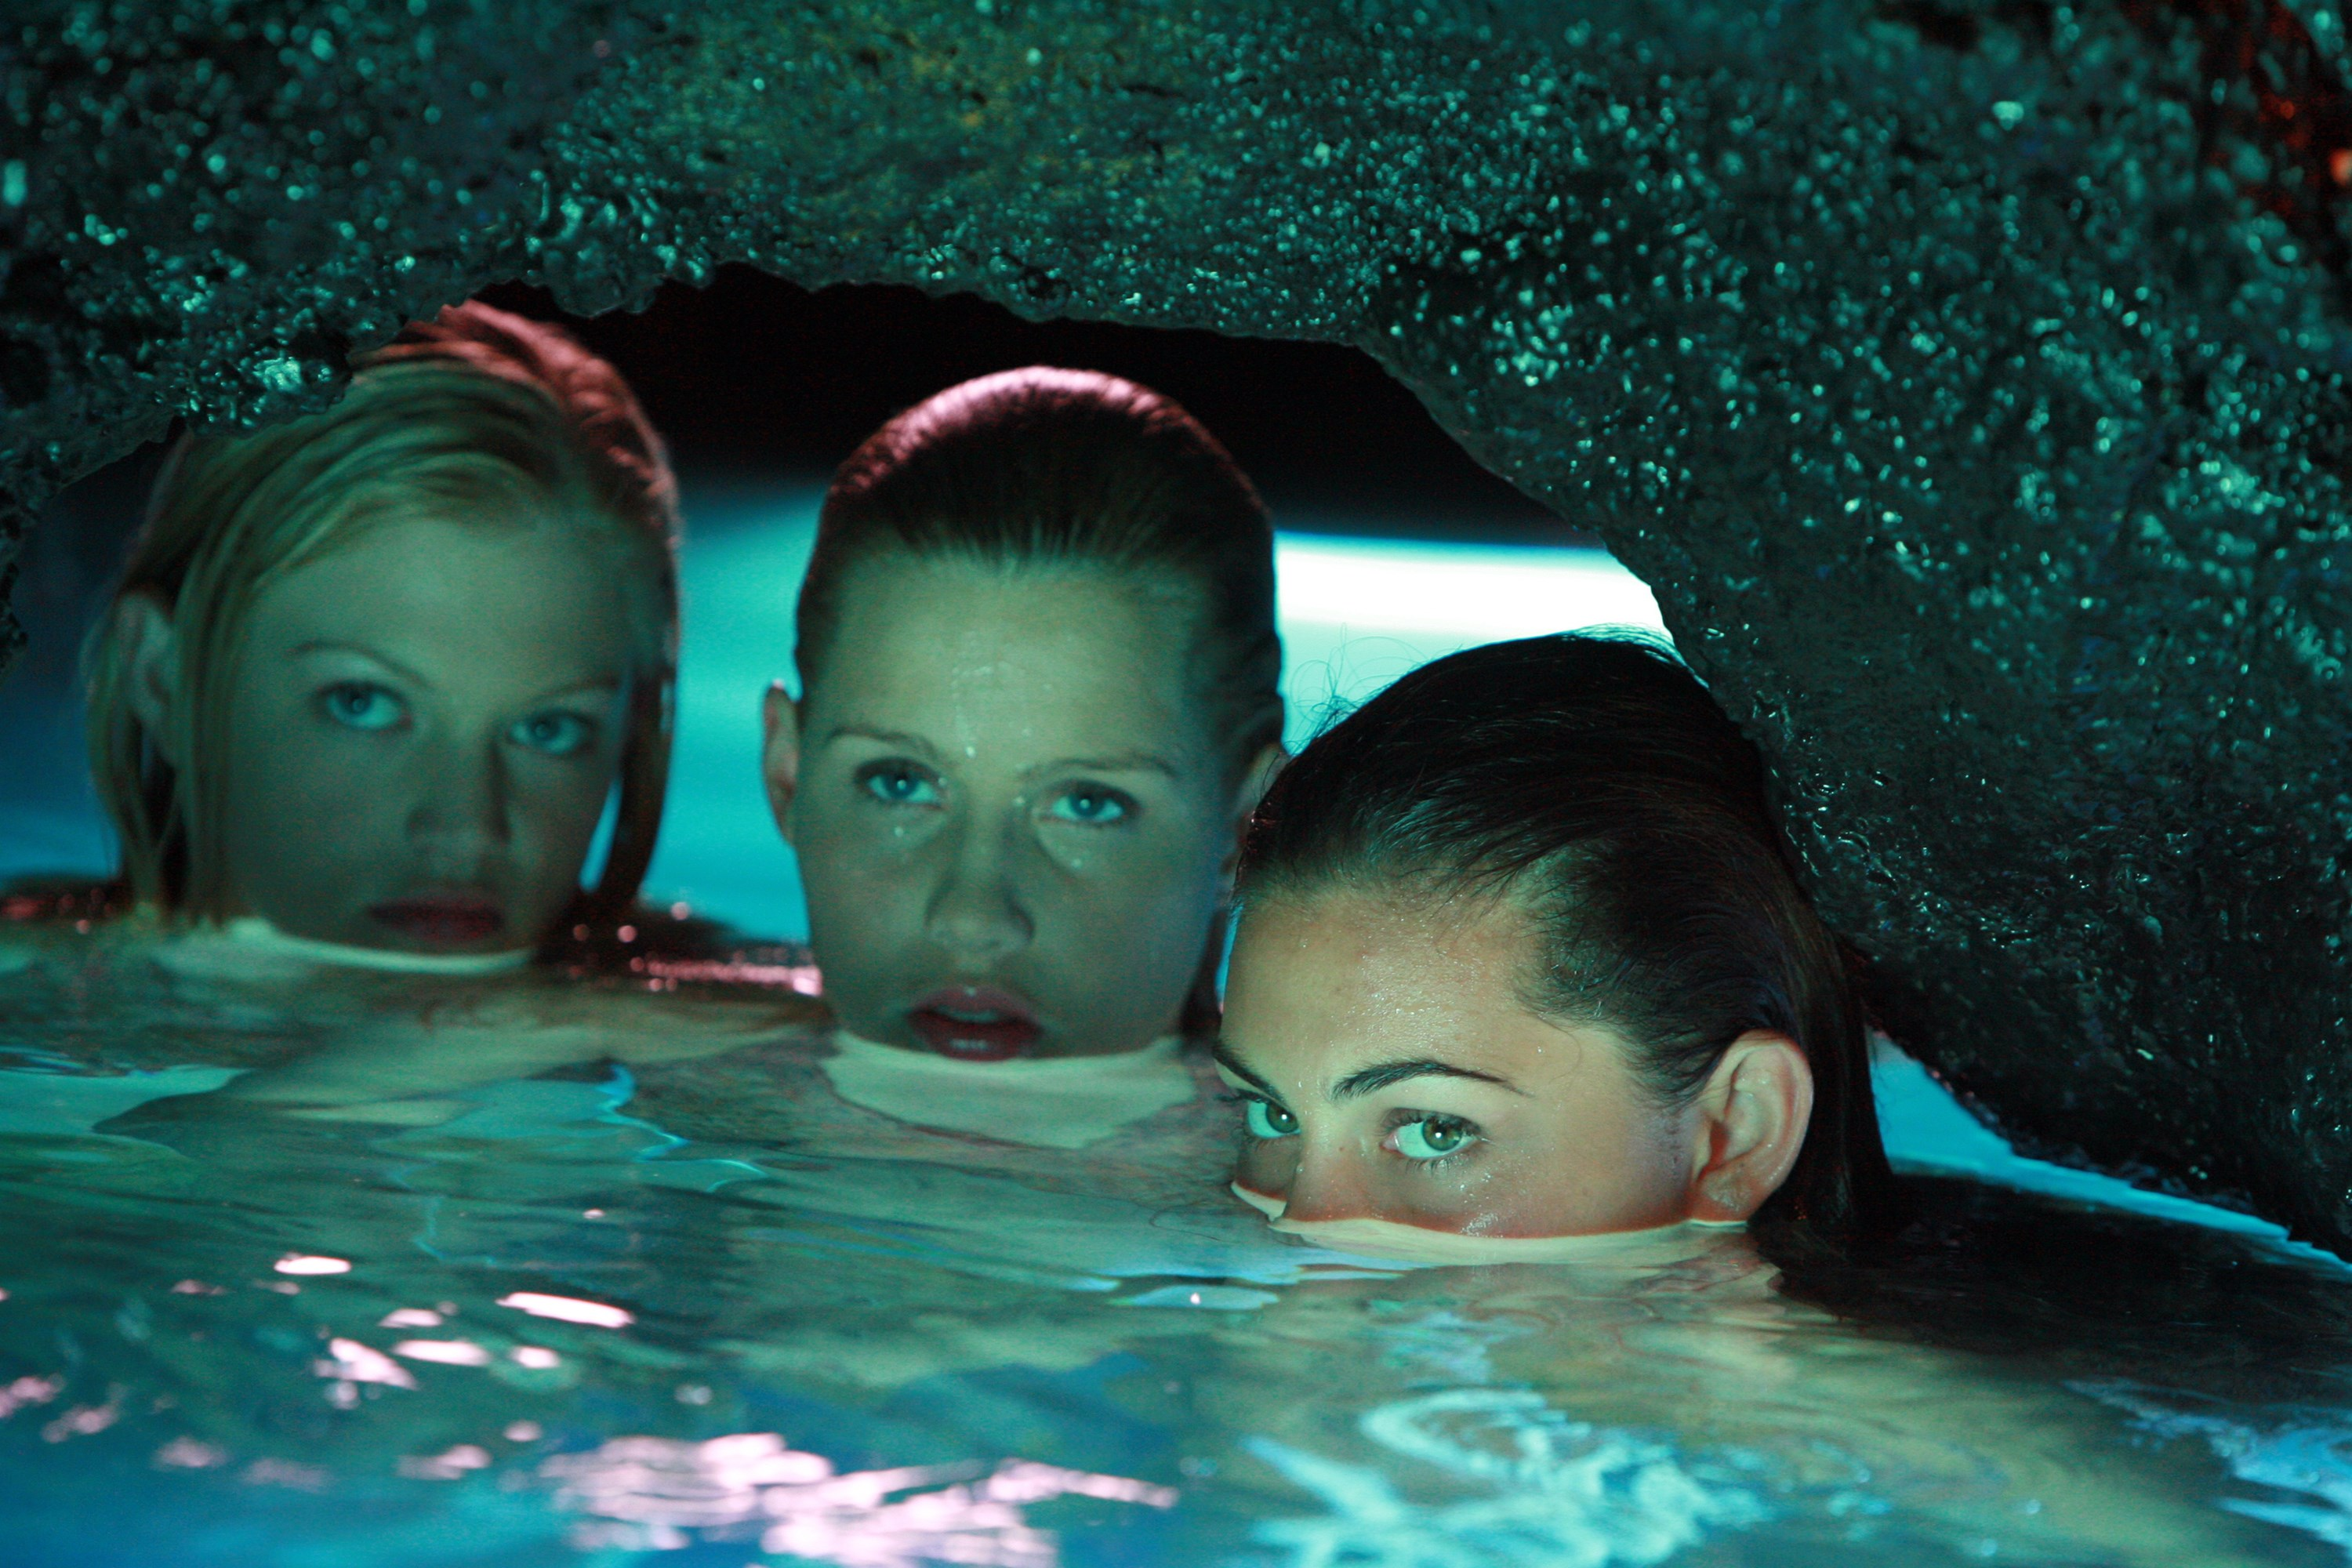 Image rikki emma and cleo hiding in h2o for H2o season 2